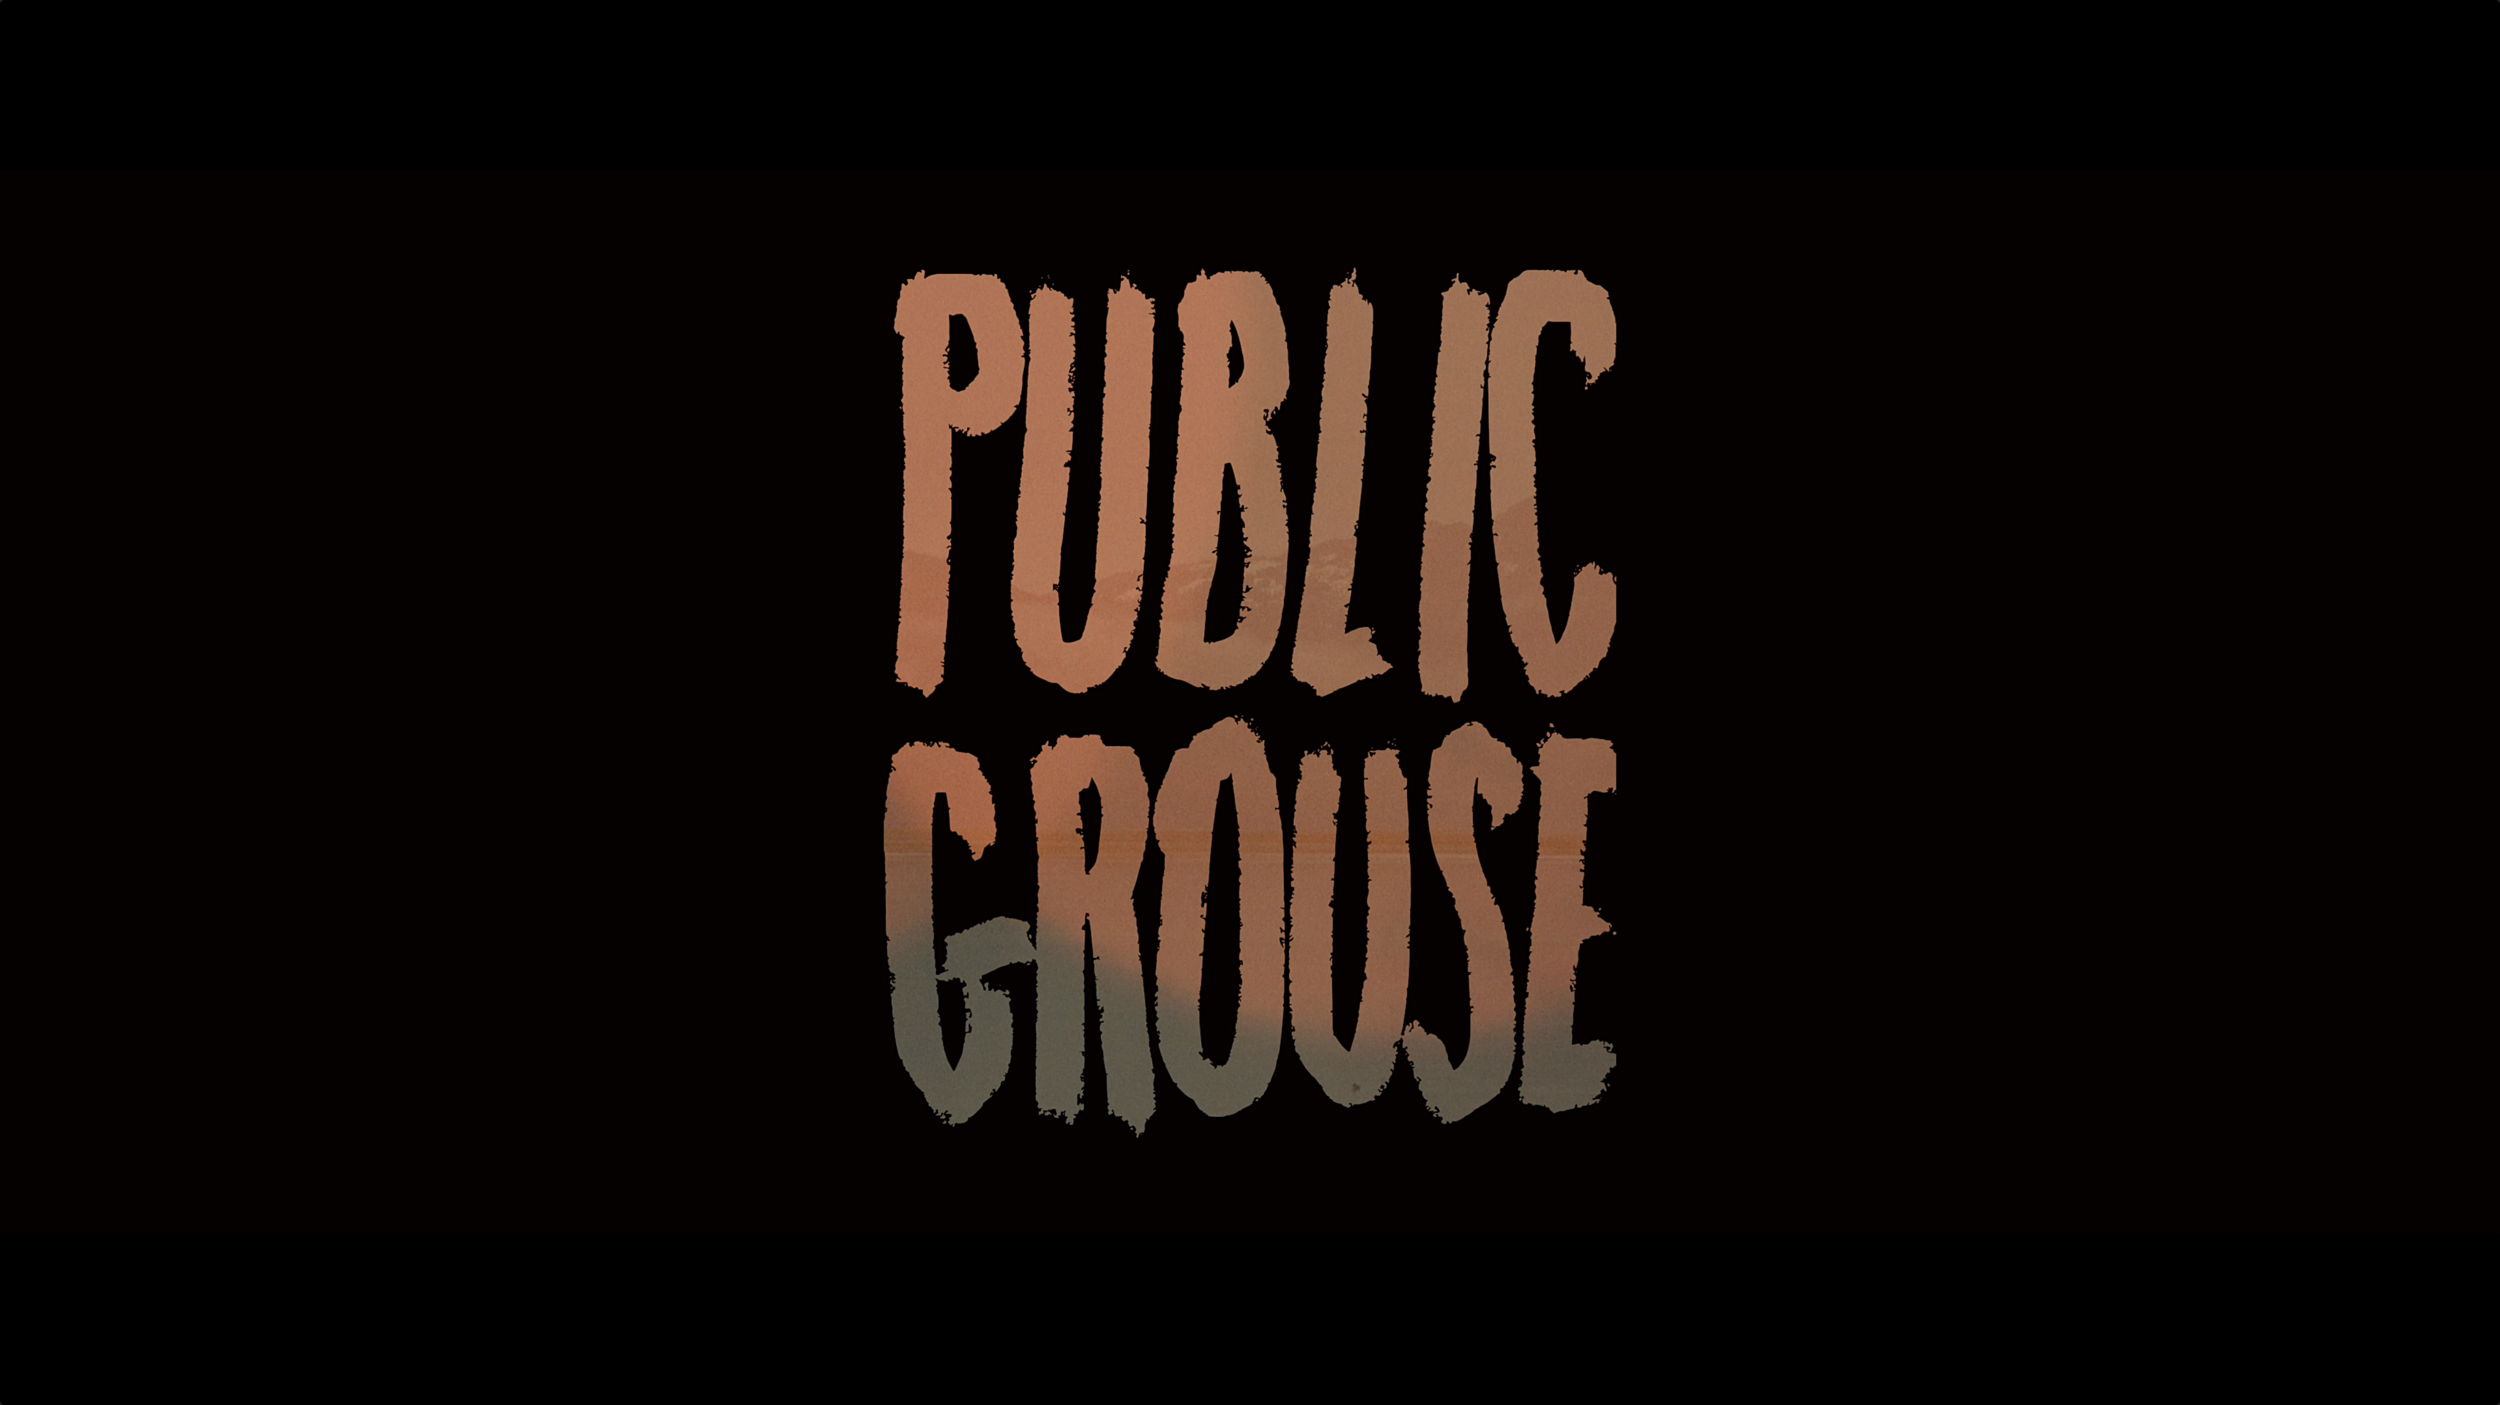 Public Grouse - Coming 2020